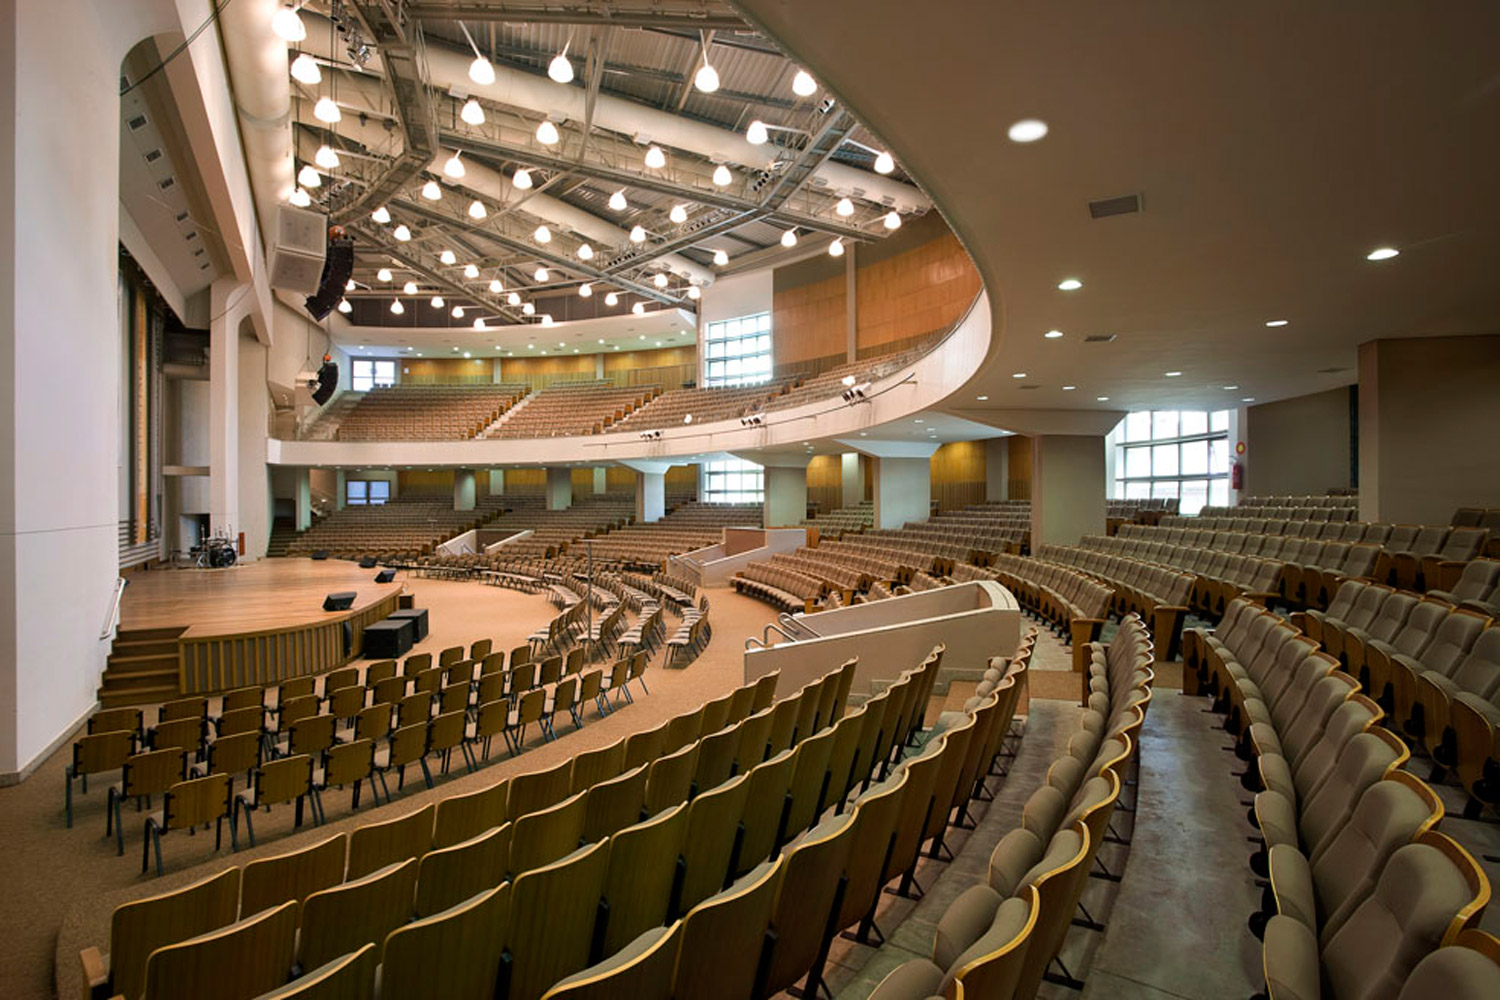 Igreja Batista Central, IBC in Brazil. Acoustic solutions by WSDG. Perfect acoustics in religious spaces.